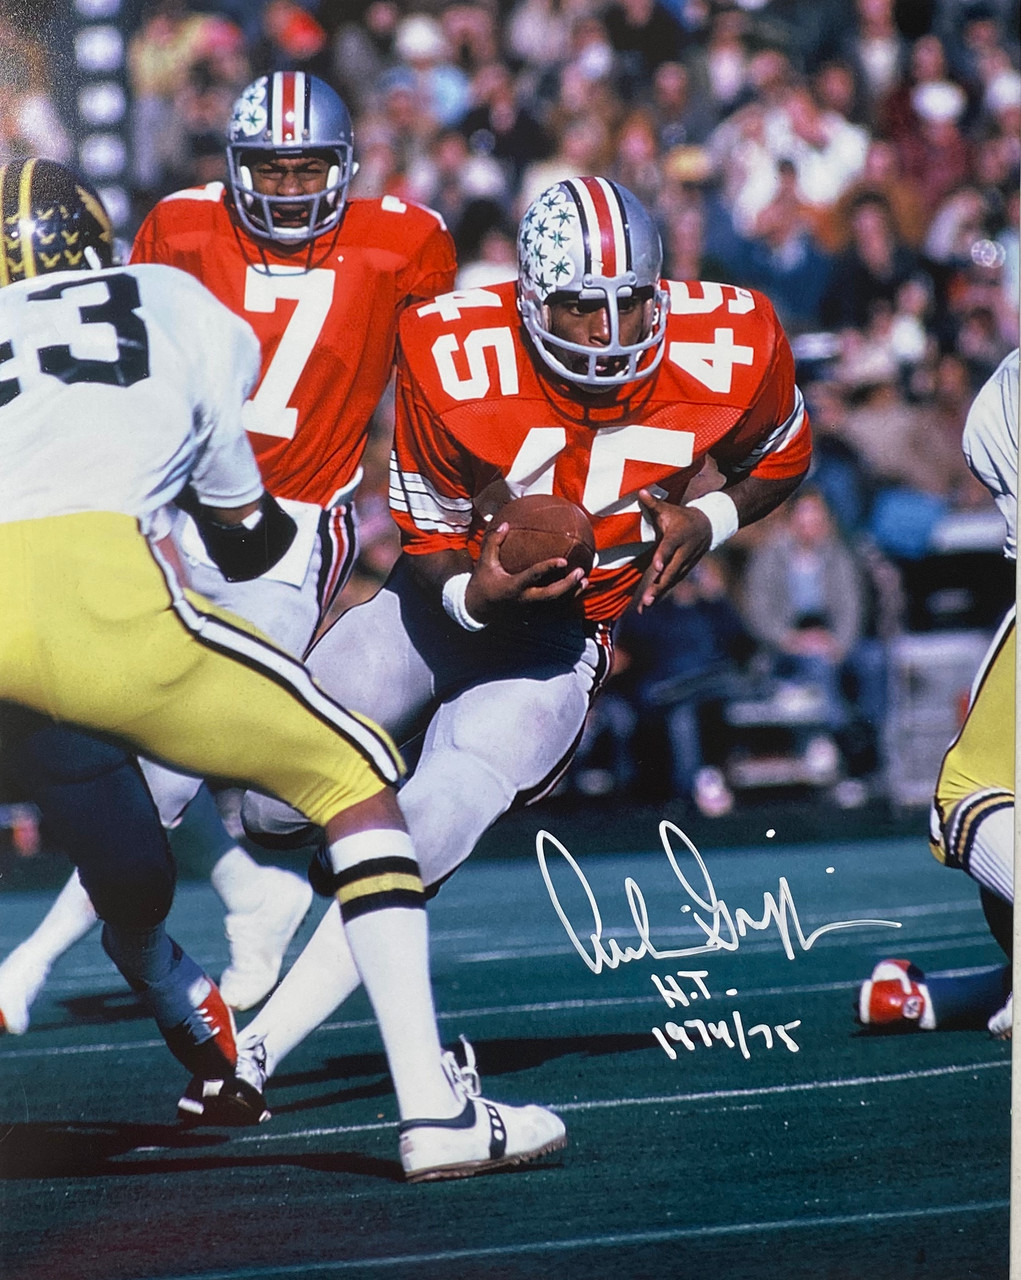 Archie Griffin Ohio State Buckeyes 11-3 11x14 Autographed Photo - Certified Authentic